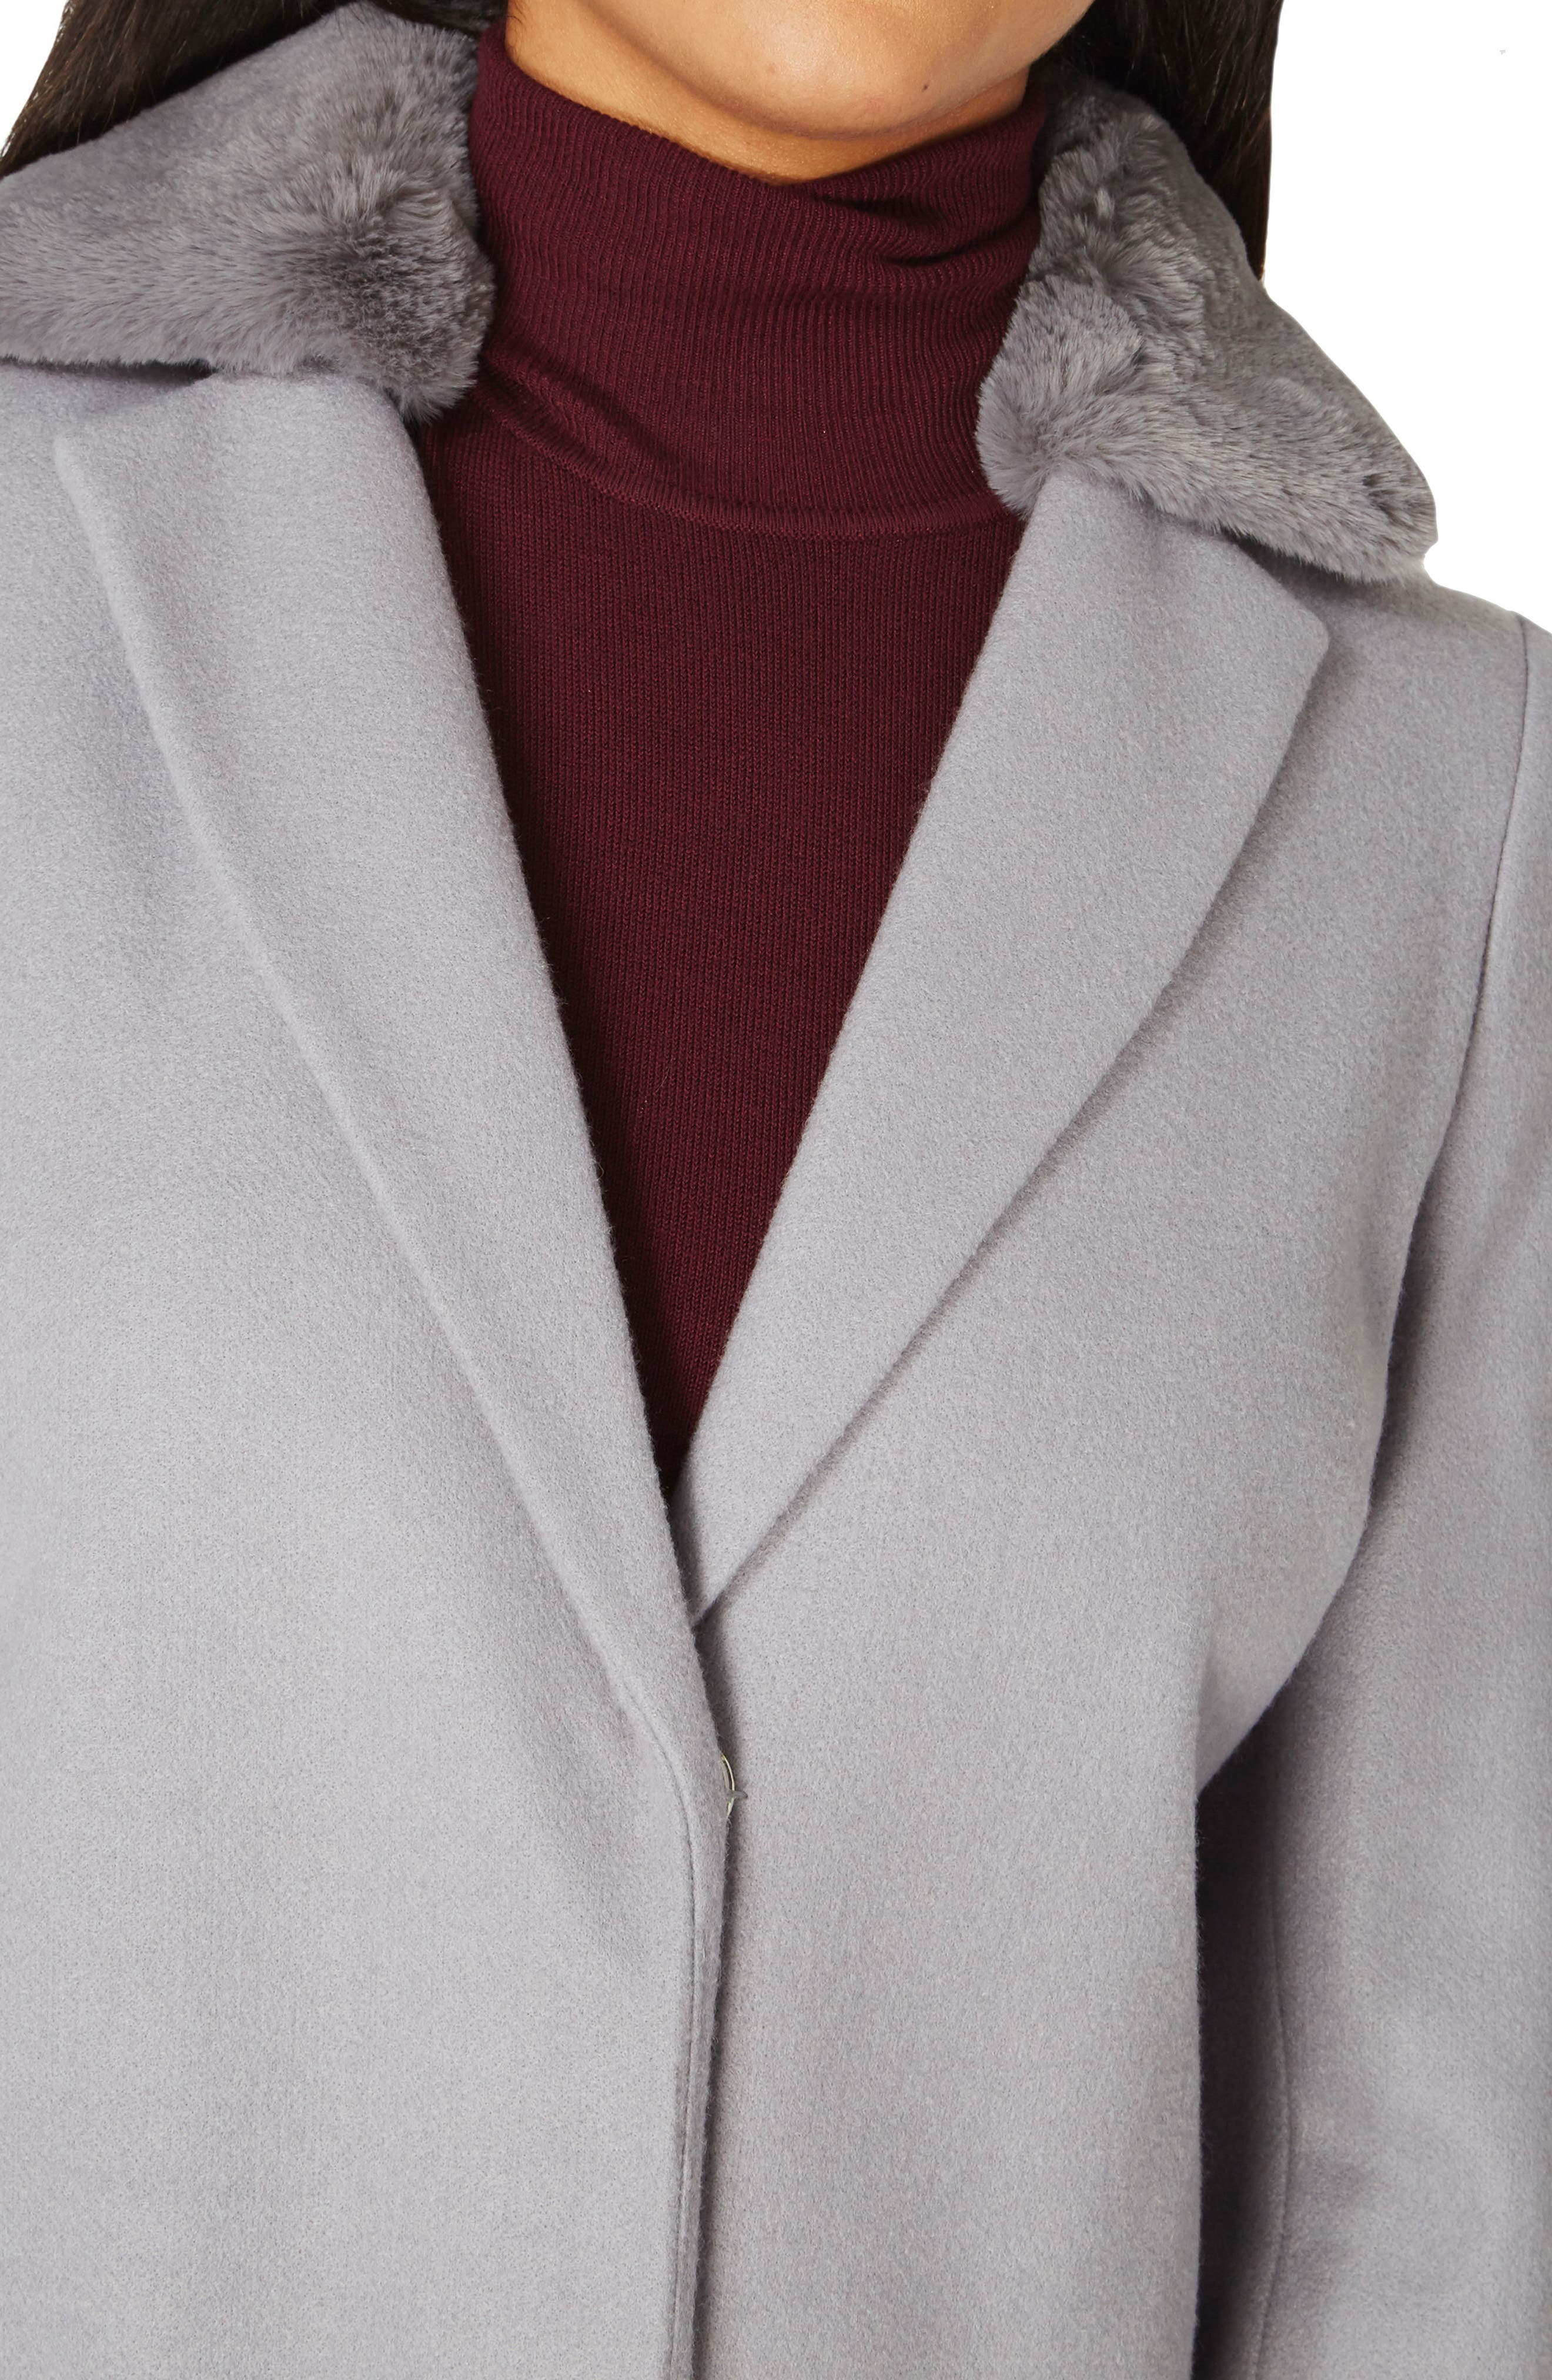 Coat with Faux Fur Collar,                             Alternate thumbnail 8, color,